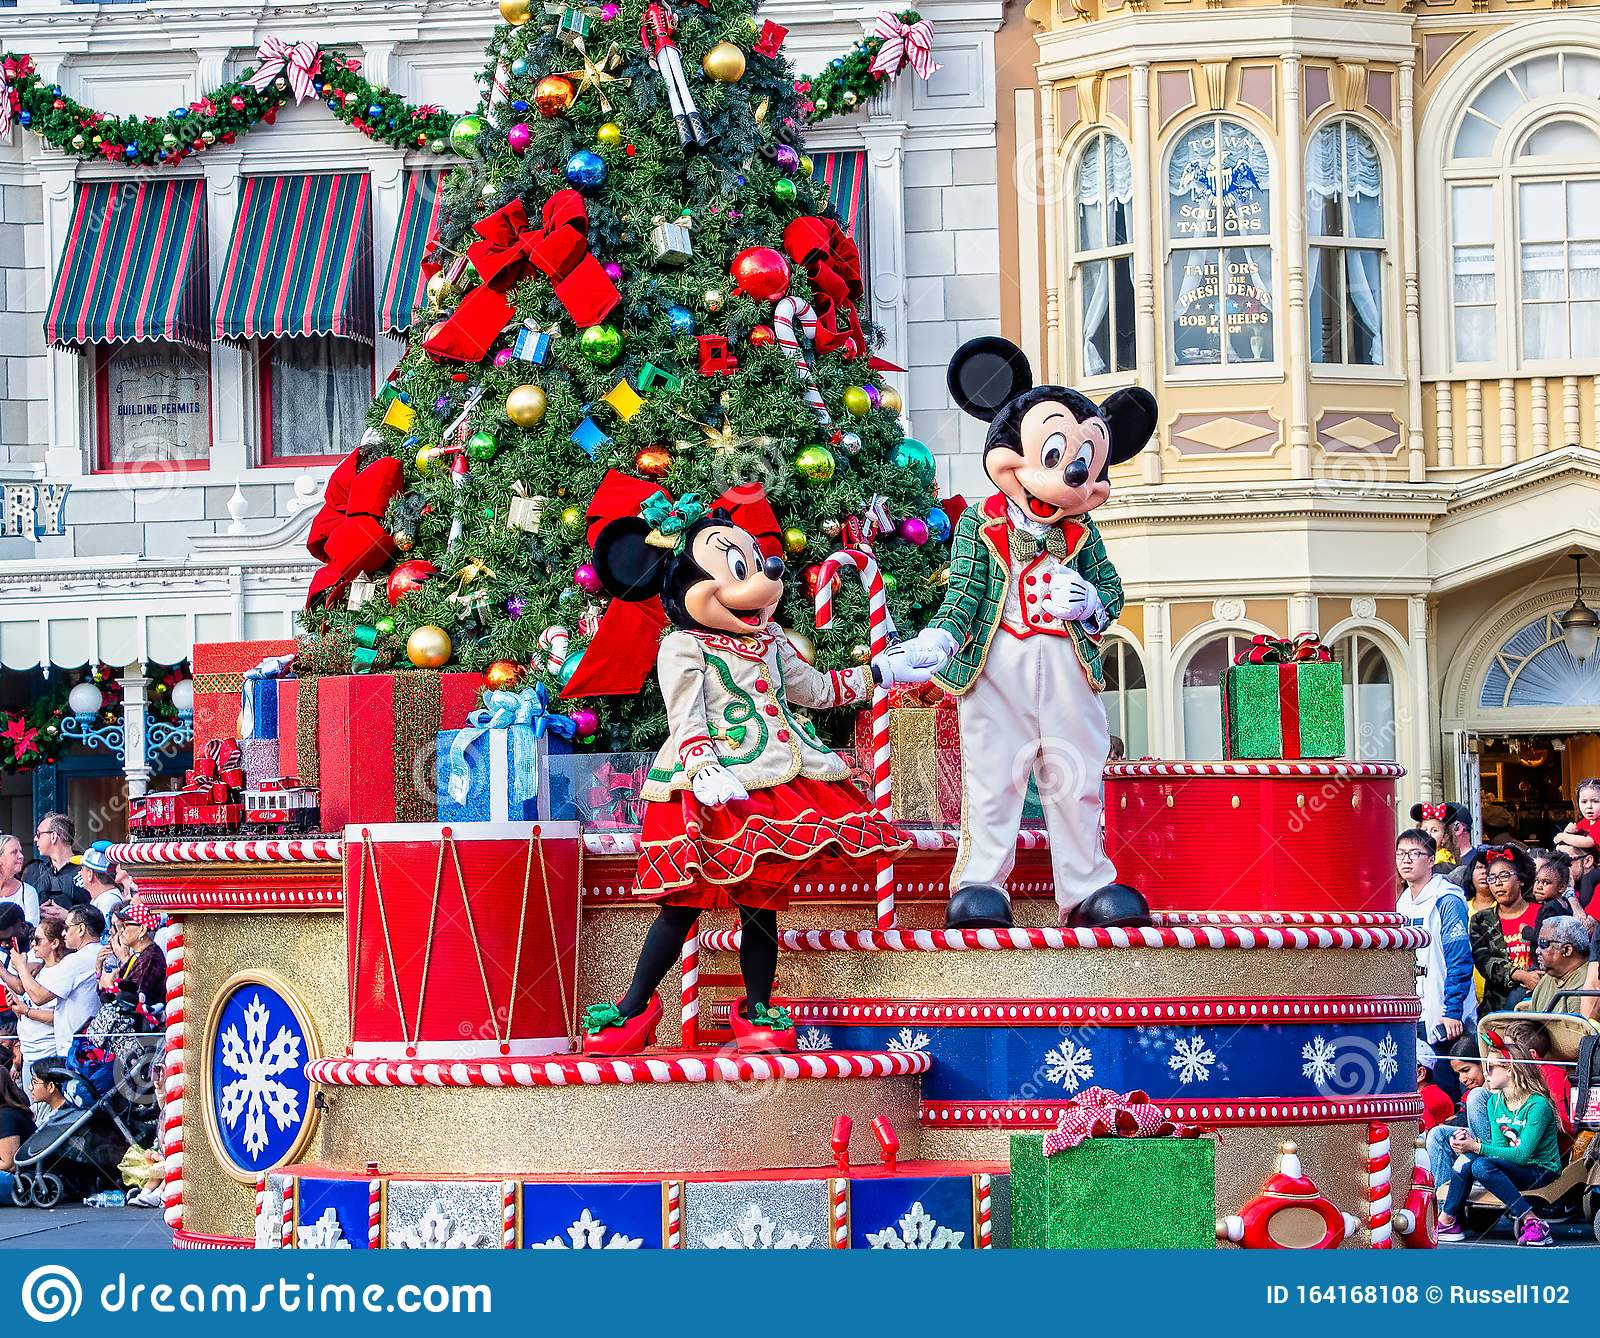 546 Mickey Mouse Christmas s Free & Royalty Free